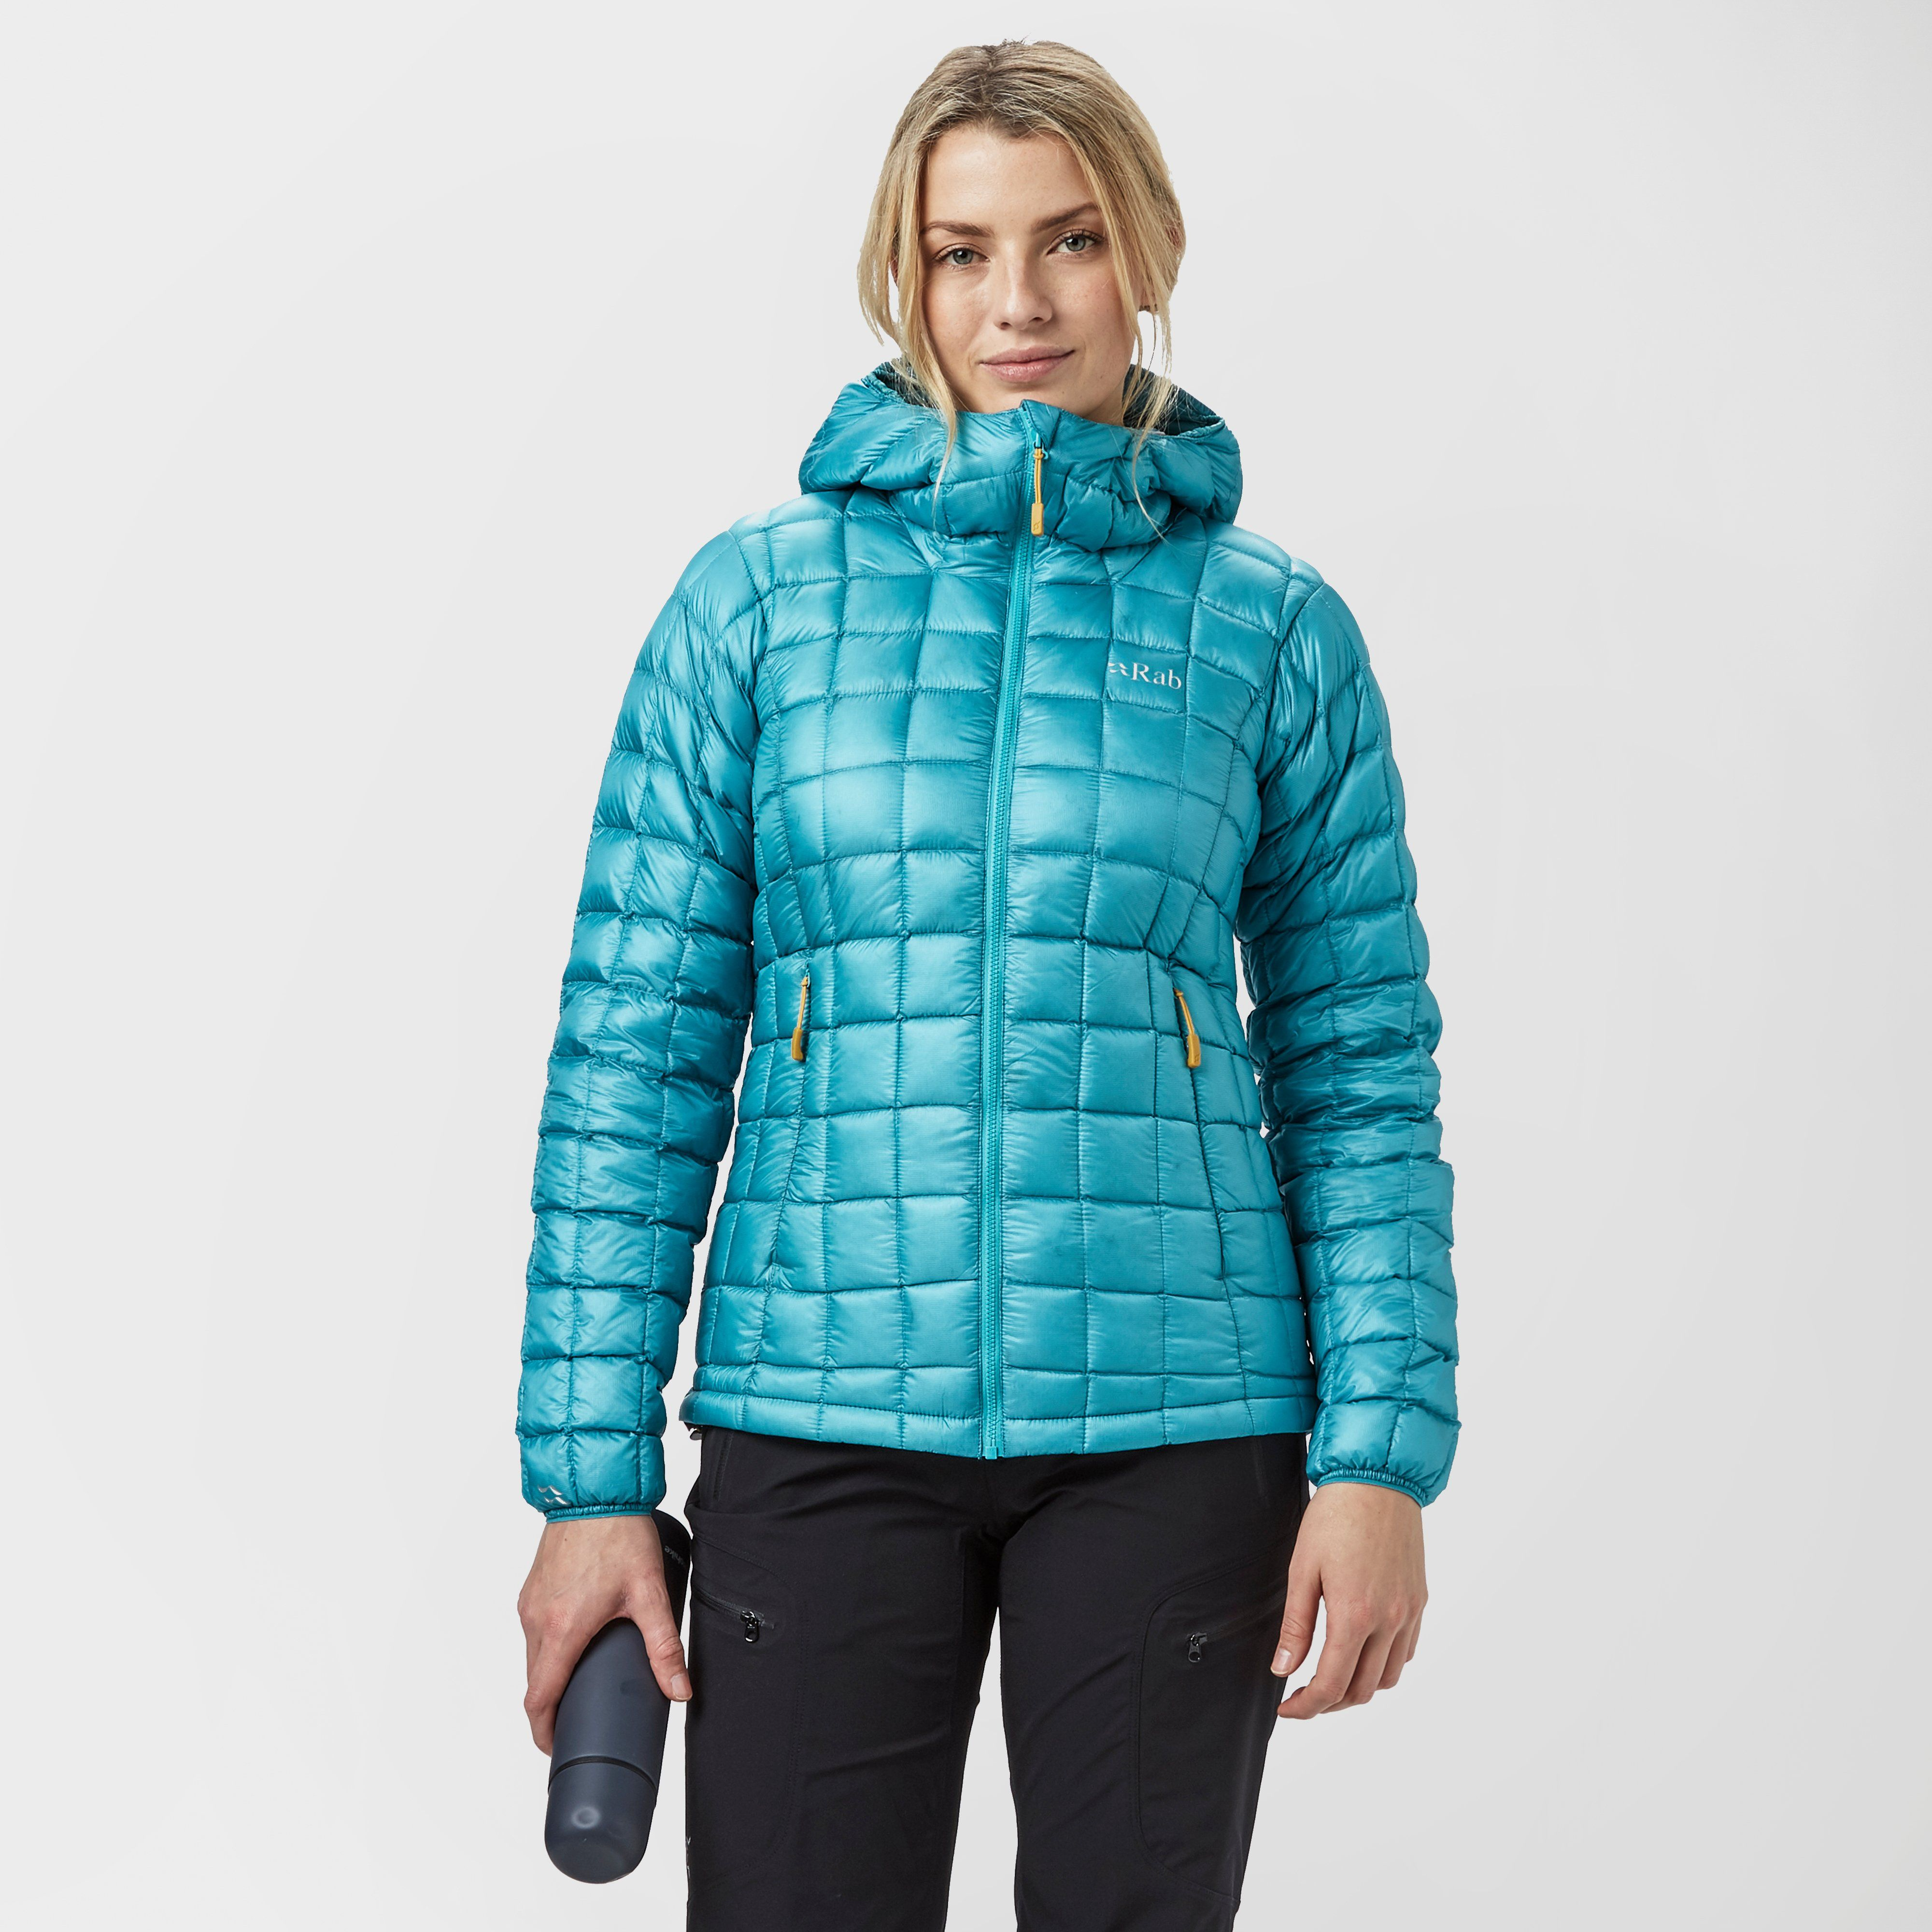 RAB Women's Continuum Down Jacket